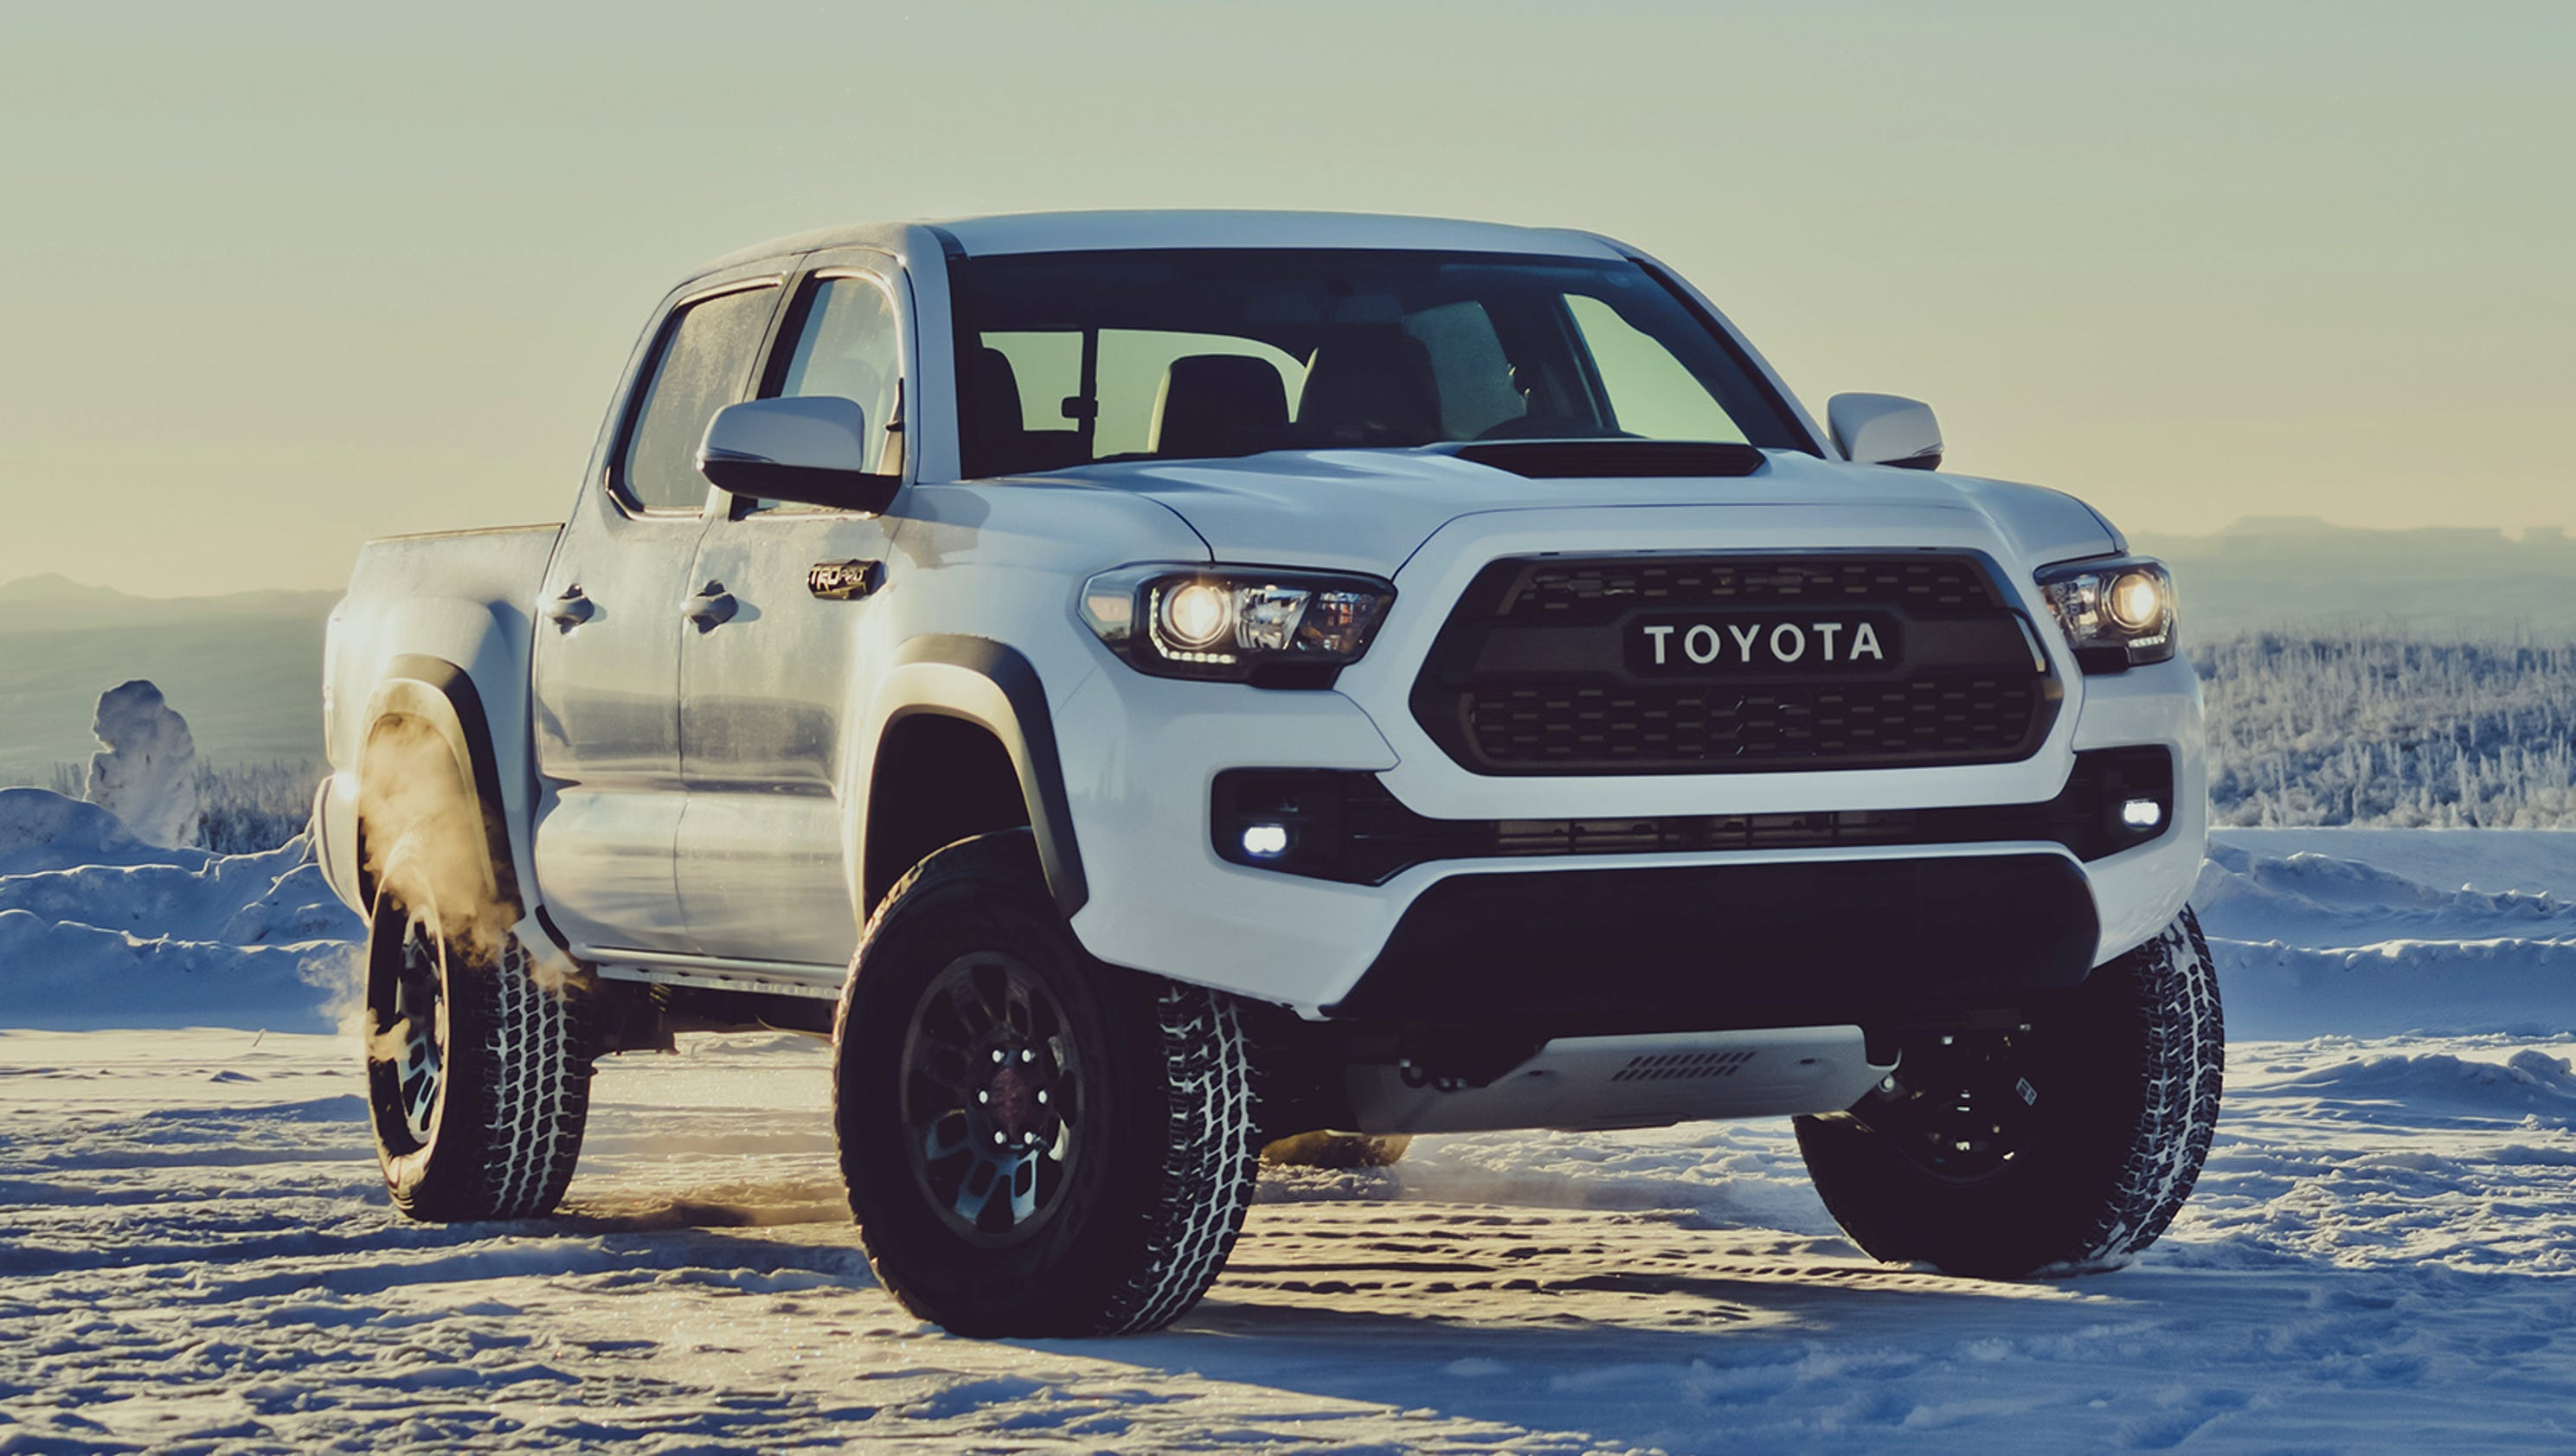 Toyota's Tacoma TRD Pro for 2017